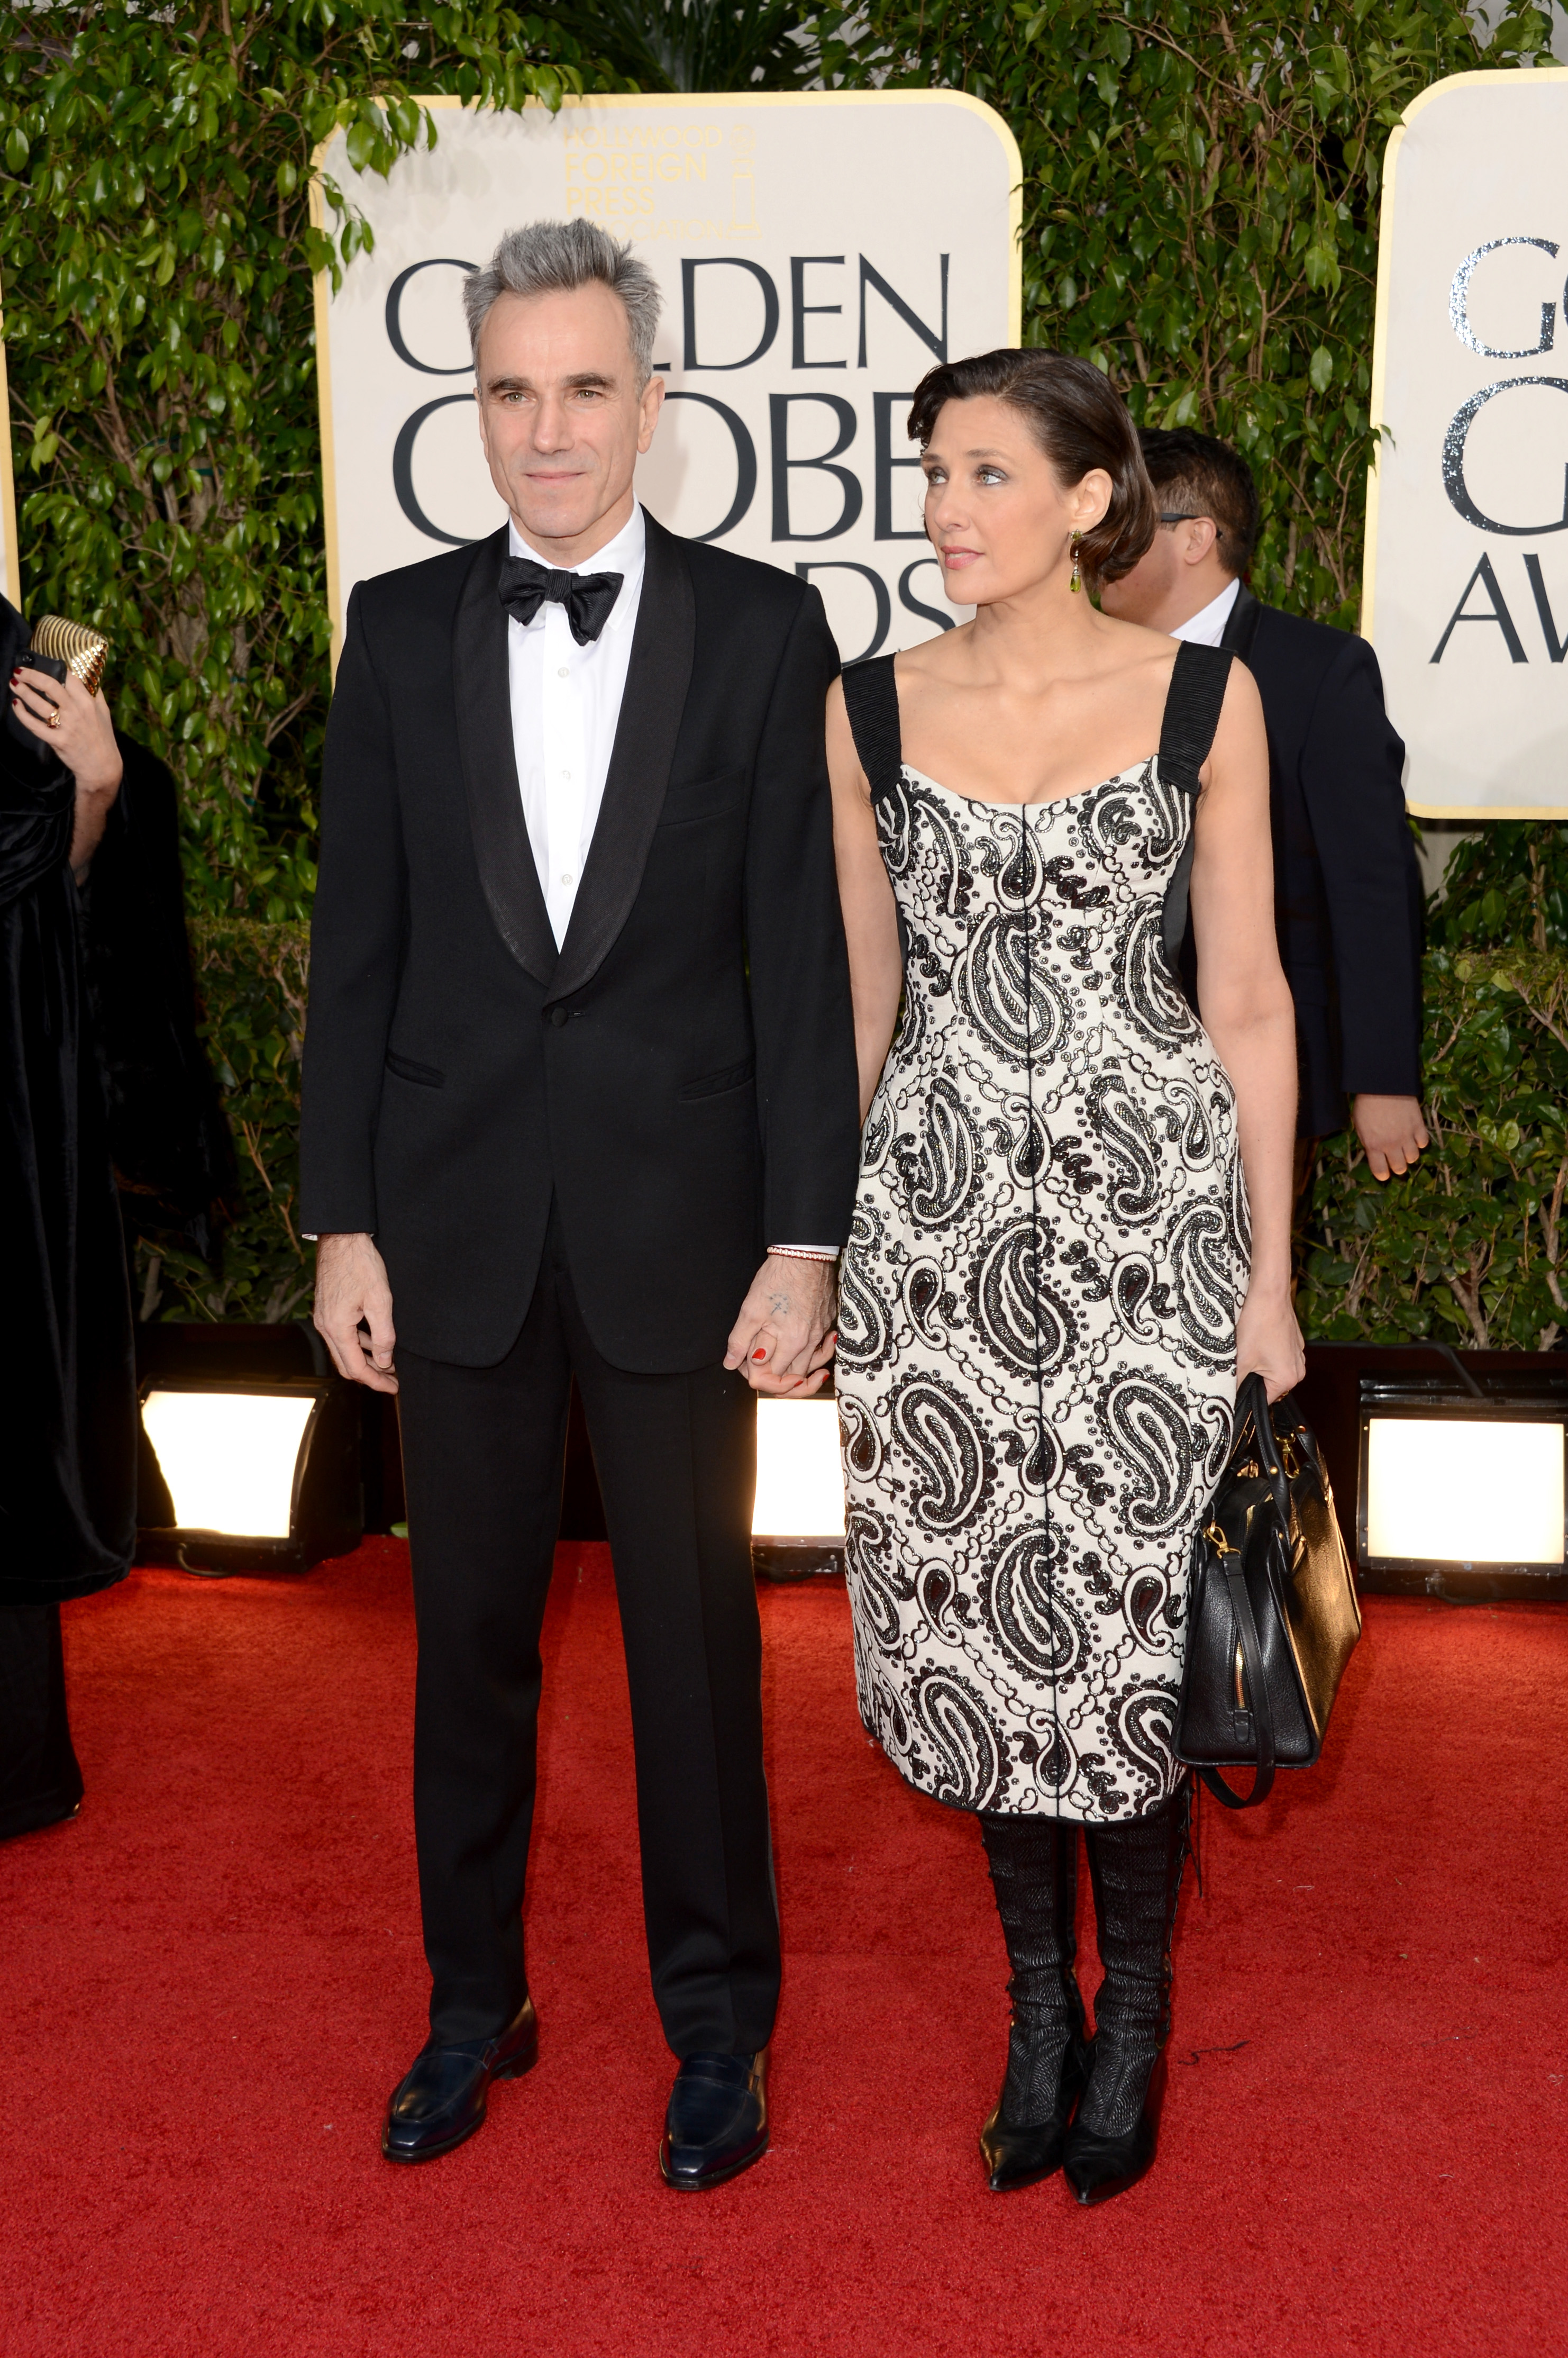 Daniel Day-Lewis and Rebecca Miller   Star Couples Sparkle ...